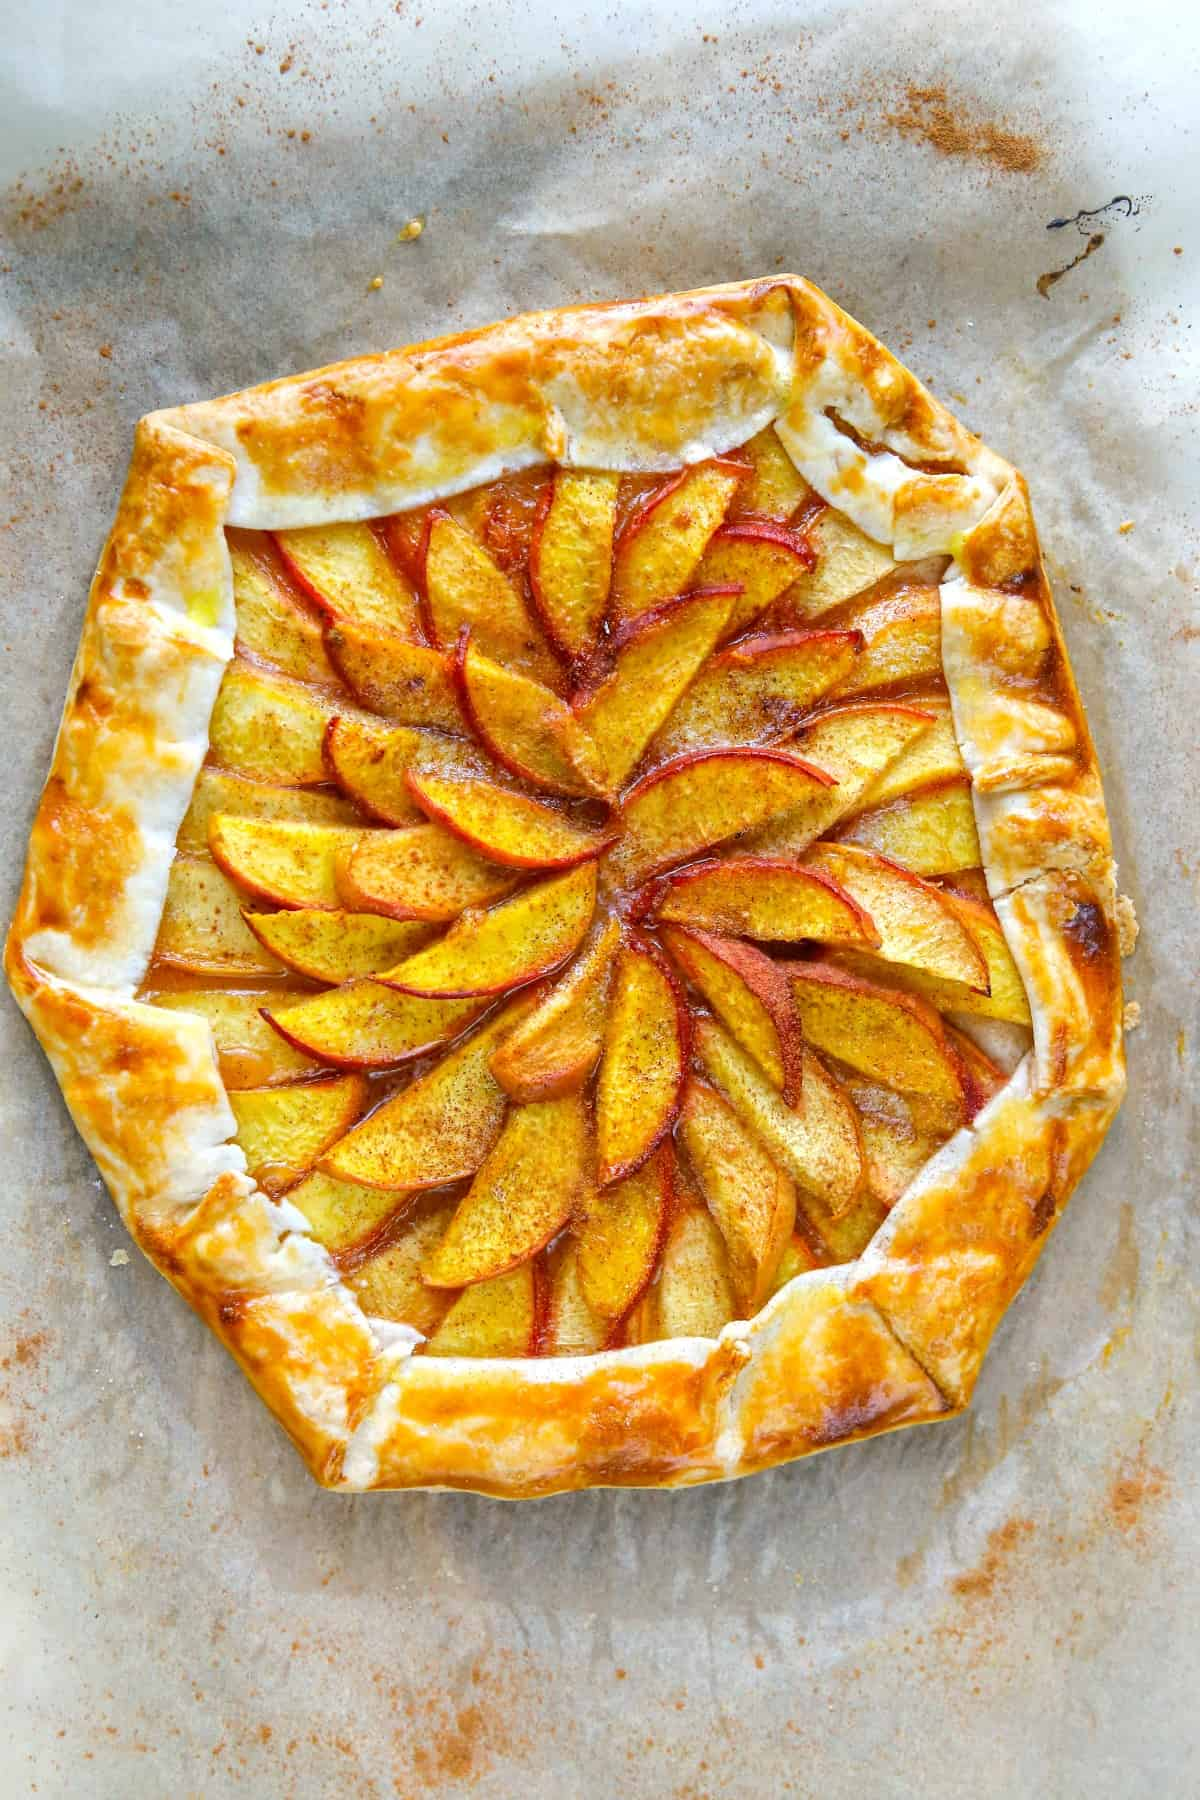 Rustic galette with peaches on parchment paper.